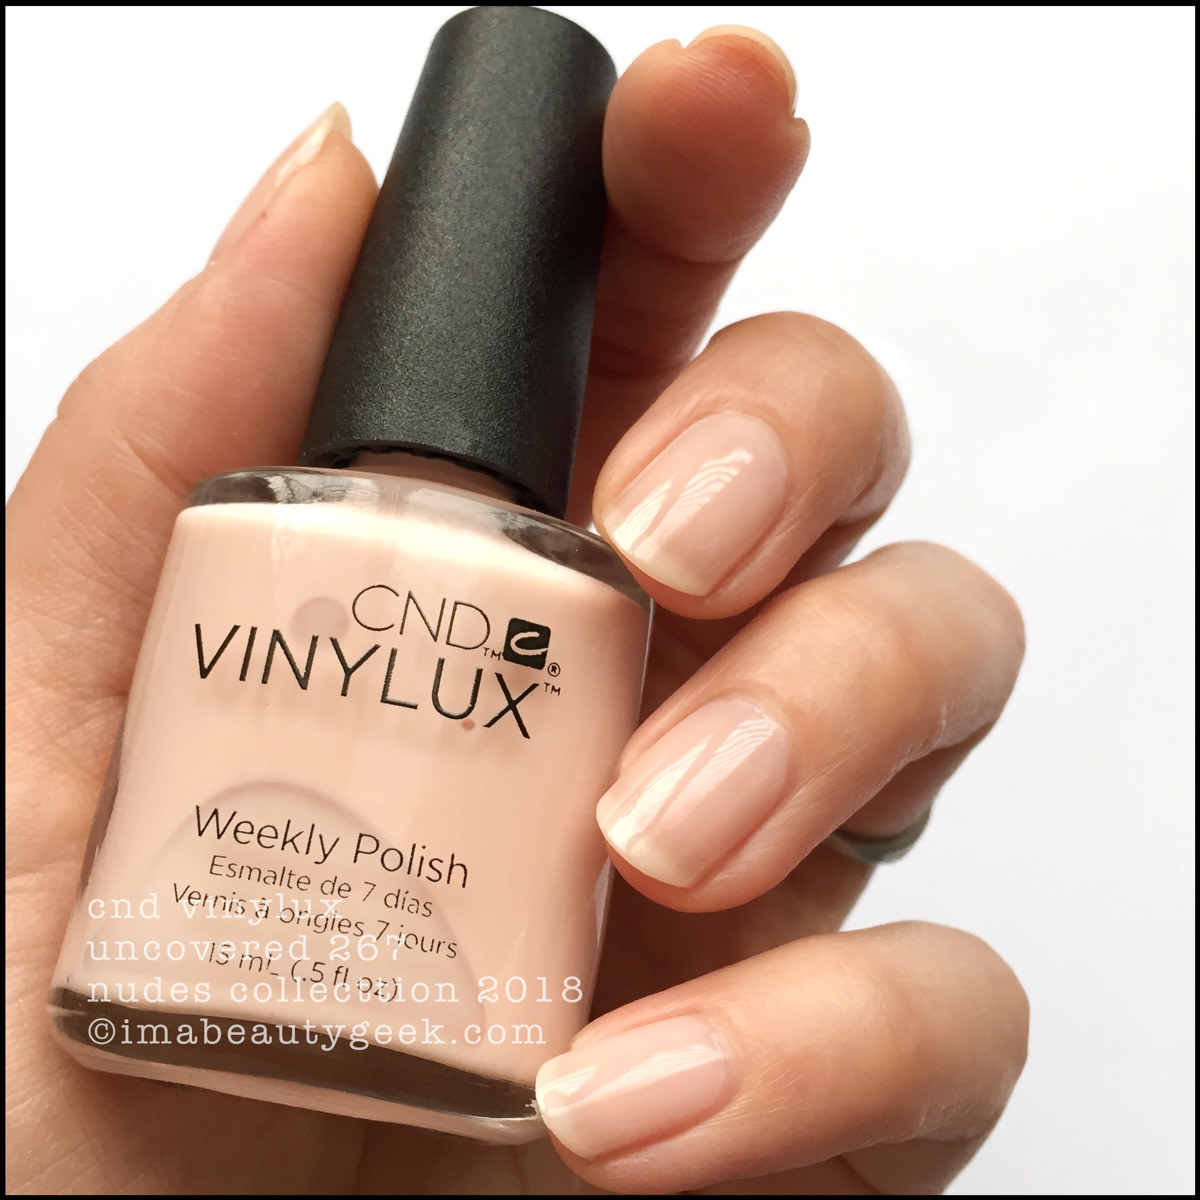 CND Vinylux Uncovered 267 - Vinylux Nudes Collection Swatches 2018